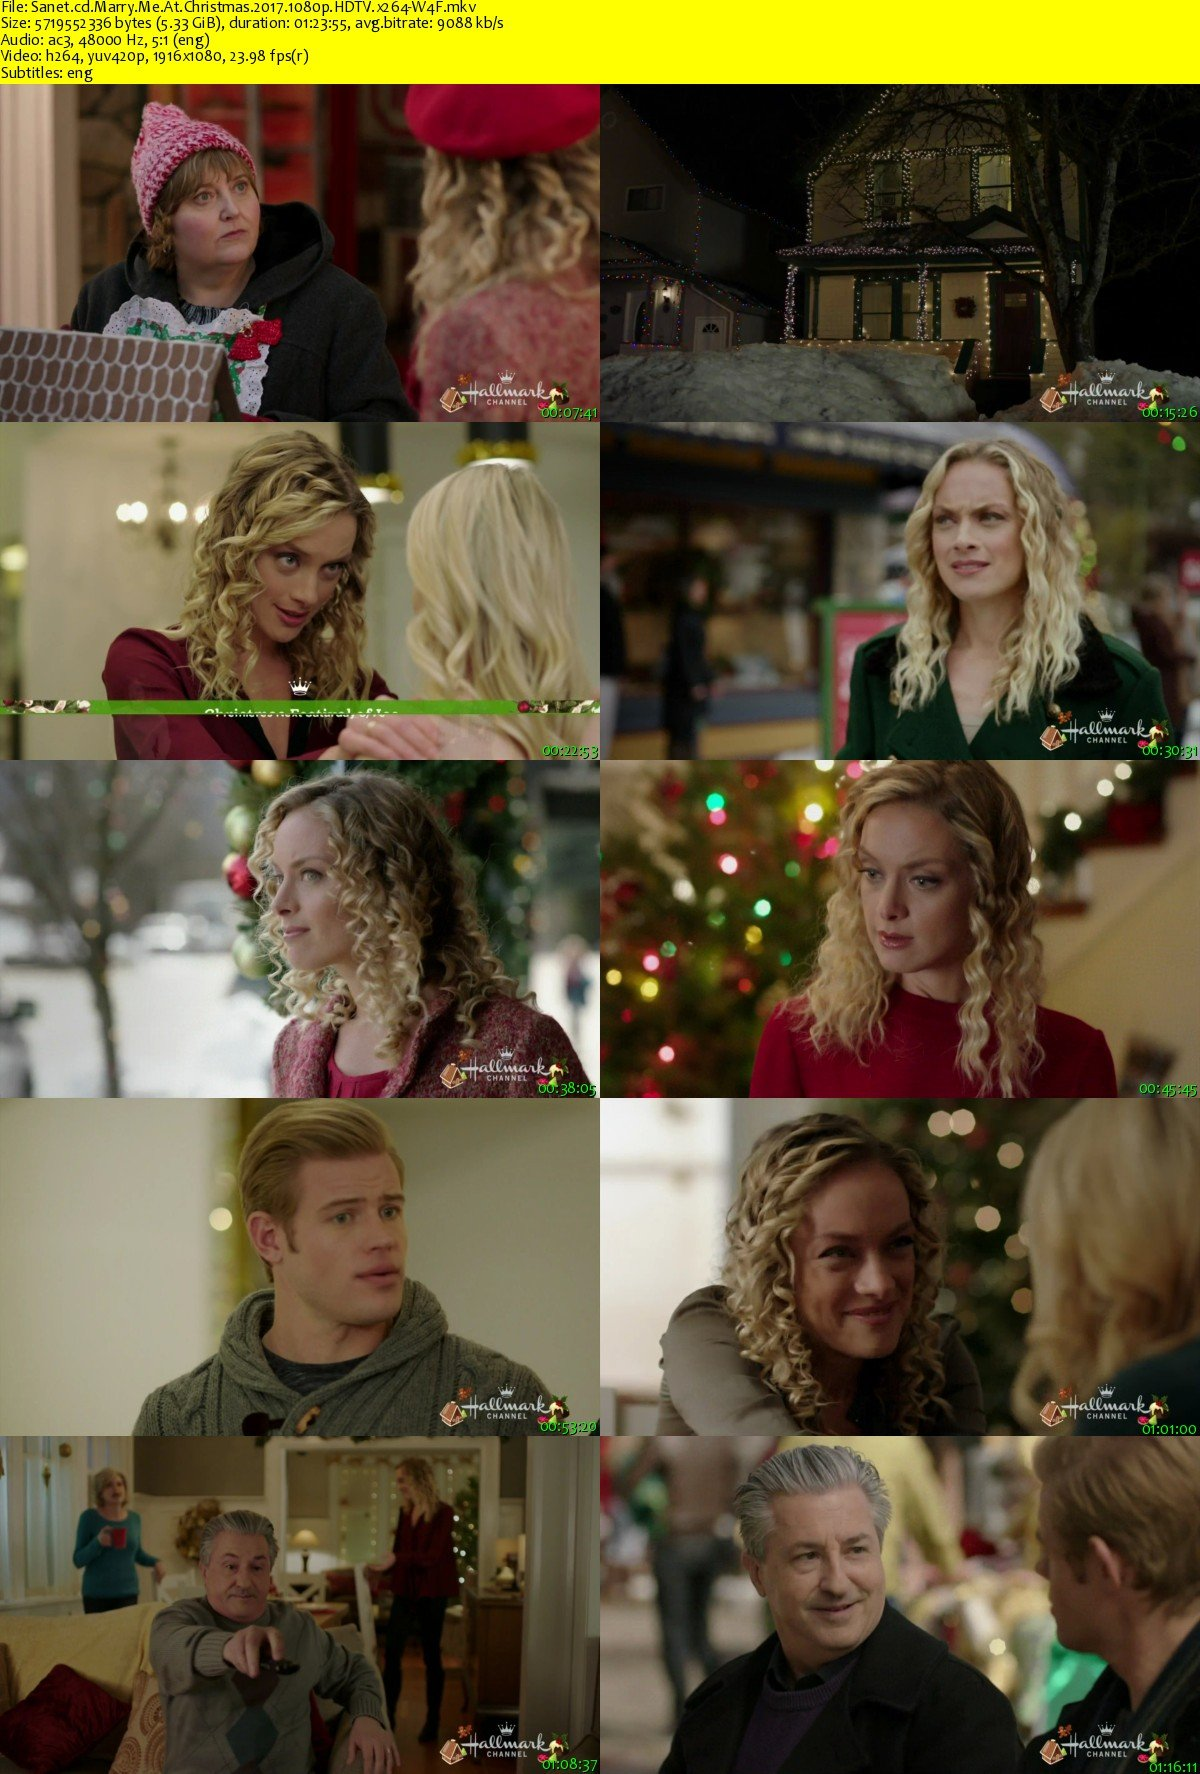 Marry Me At Christmas.Download Marry Me At Christmas 2017 1080p Hdtv X264 W4f